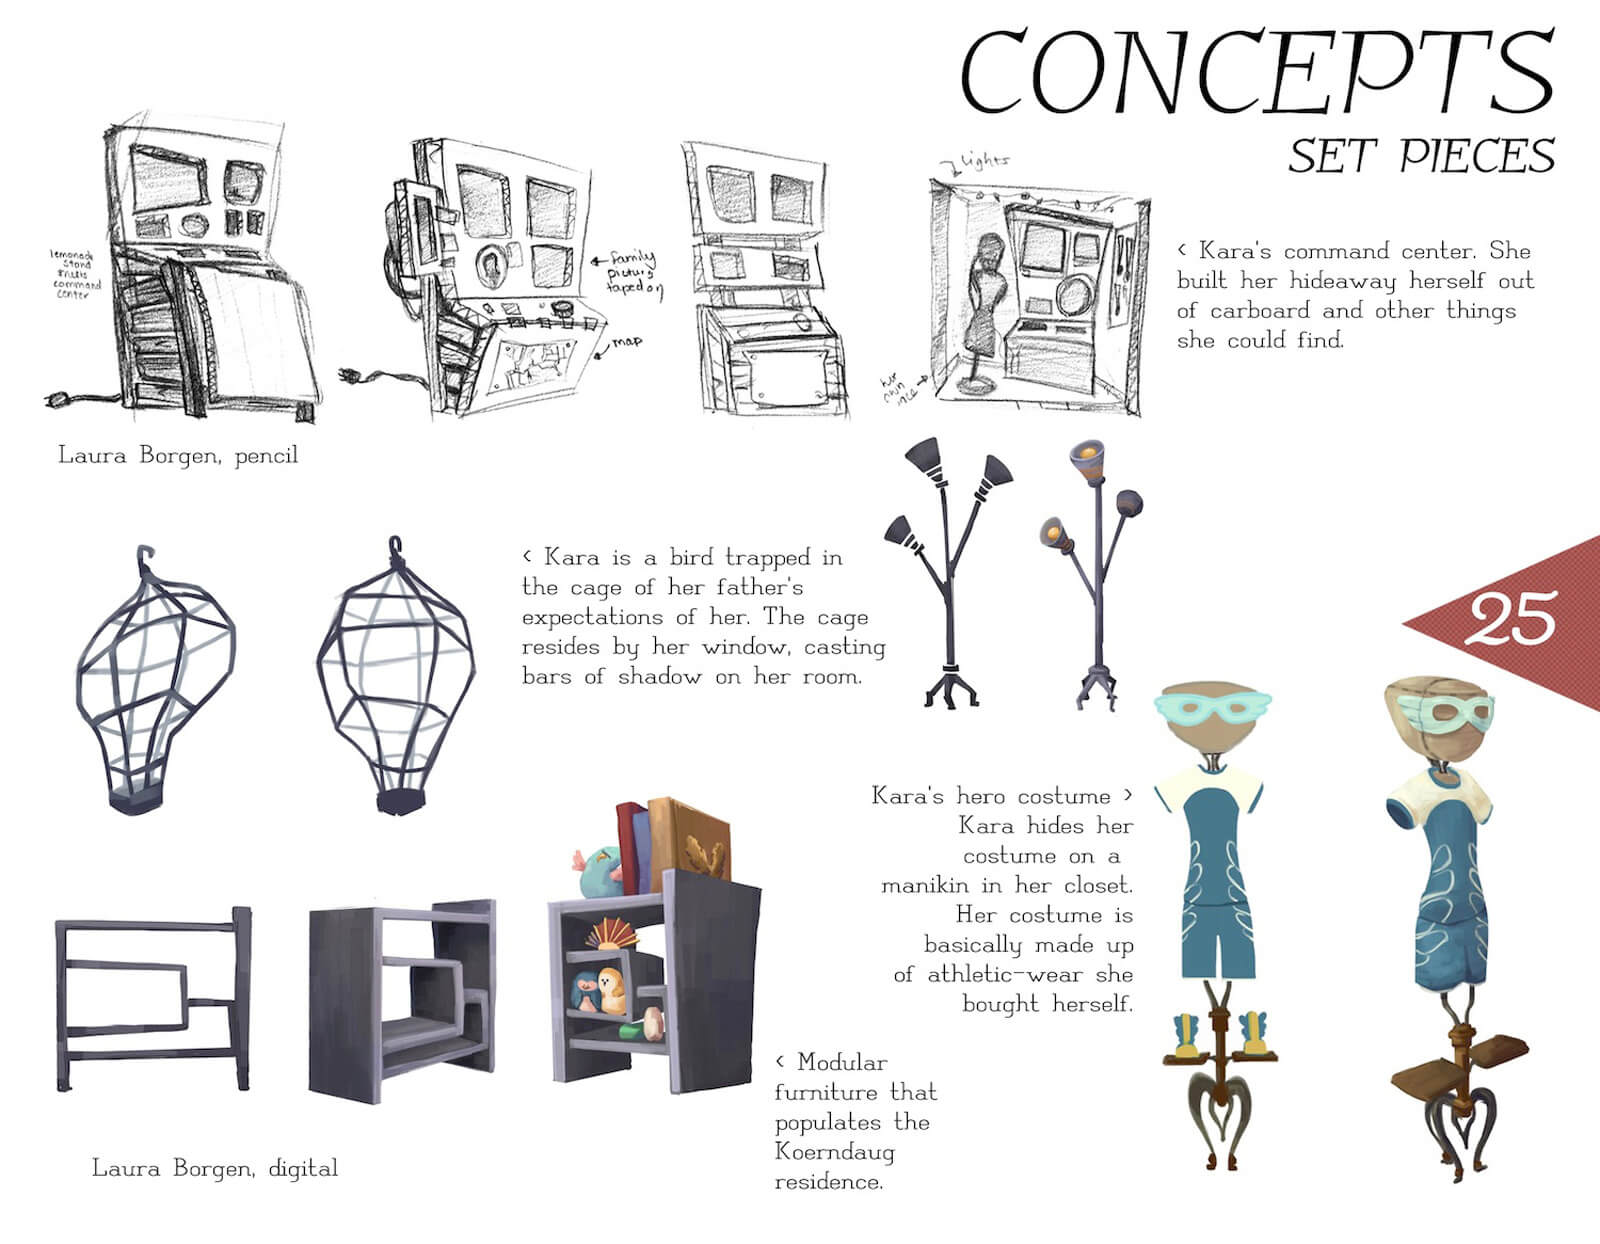 Concept art of set pieces in the film Super Secret, including command centers, lamps, shelves, and mannequin